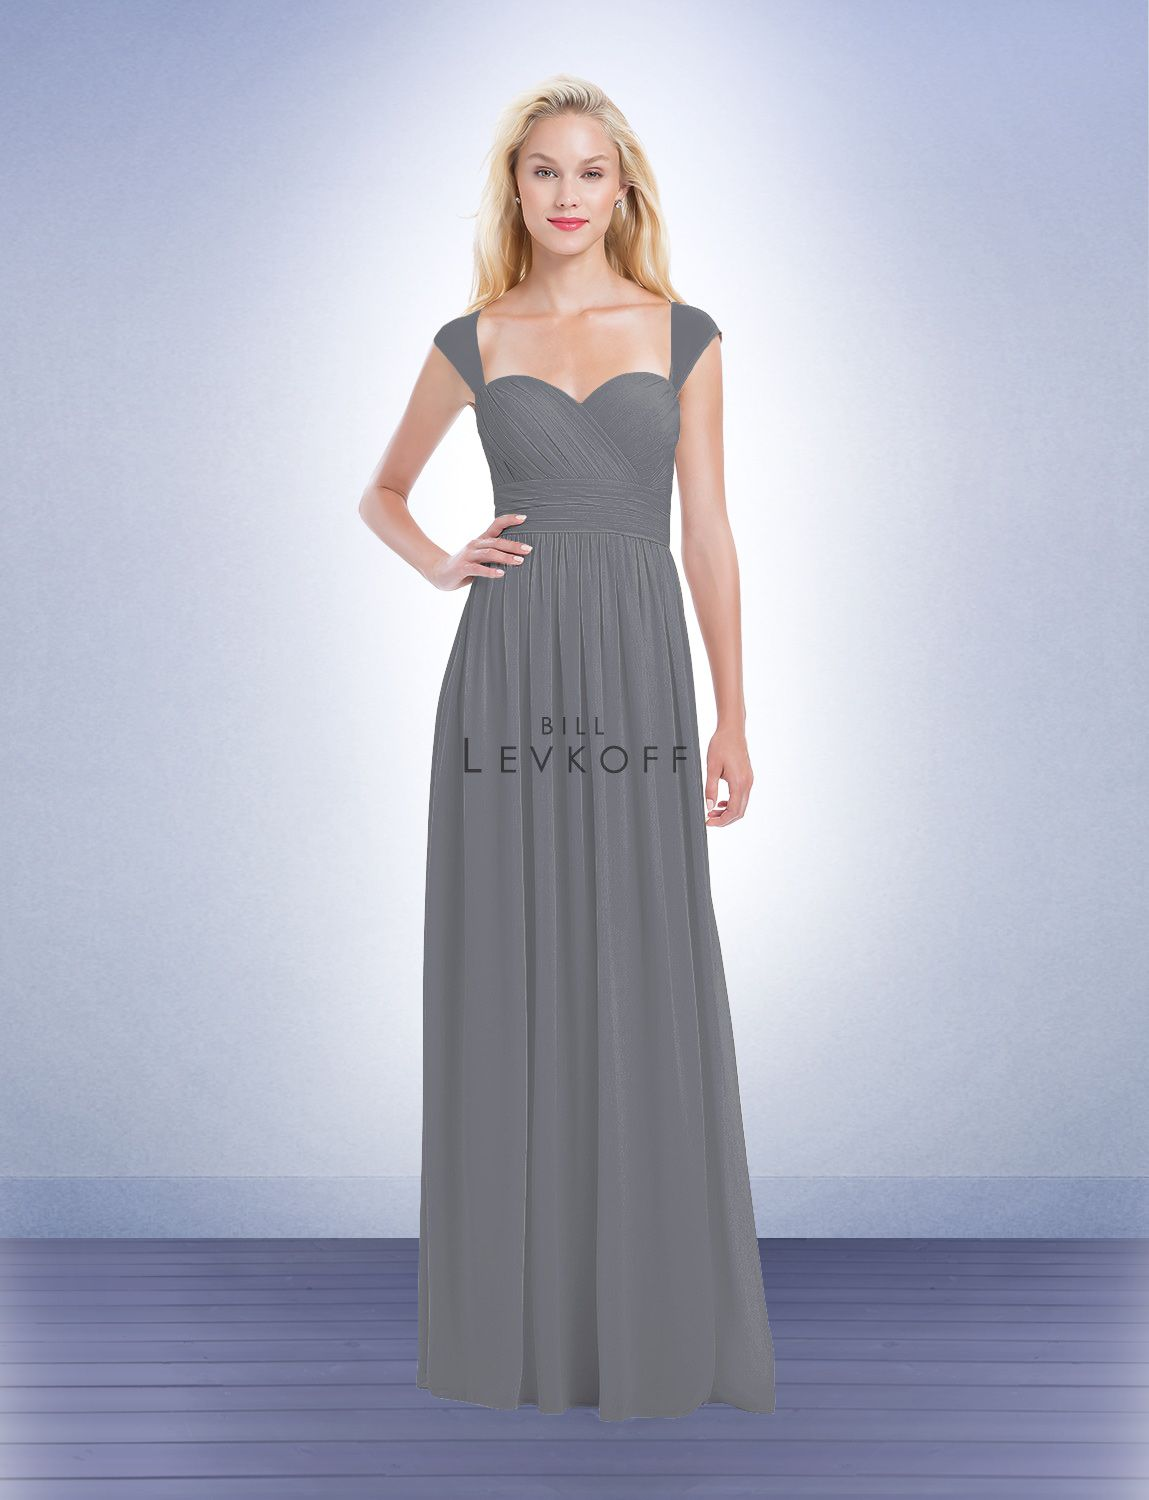 Bridesmaid dress style 1163 bridesmaid dresses by bill levkoff bridesmaid dress style 1163 bridesmaid dresses by bill levkoff ombrellifo Images